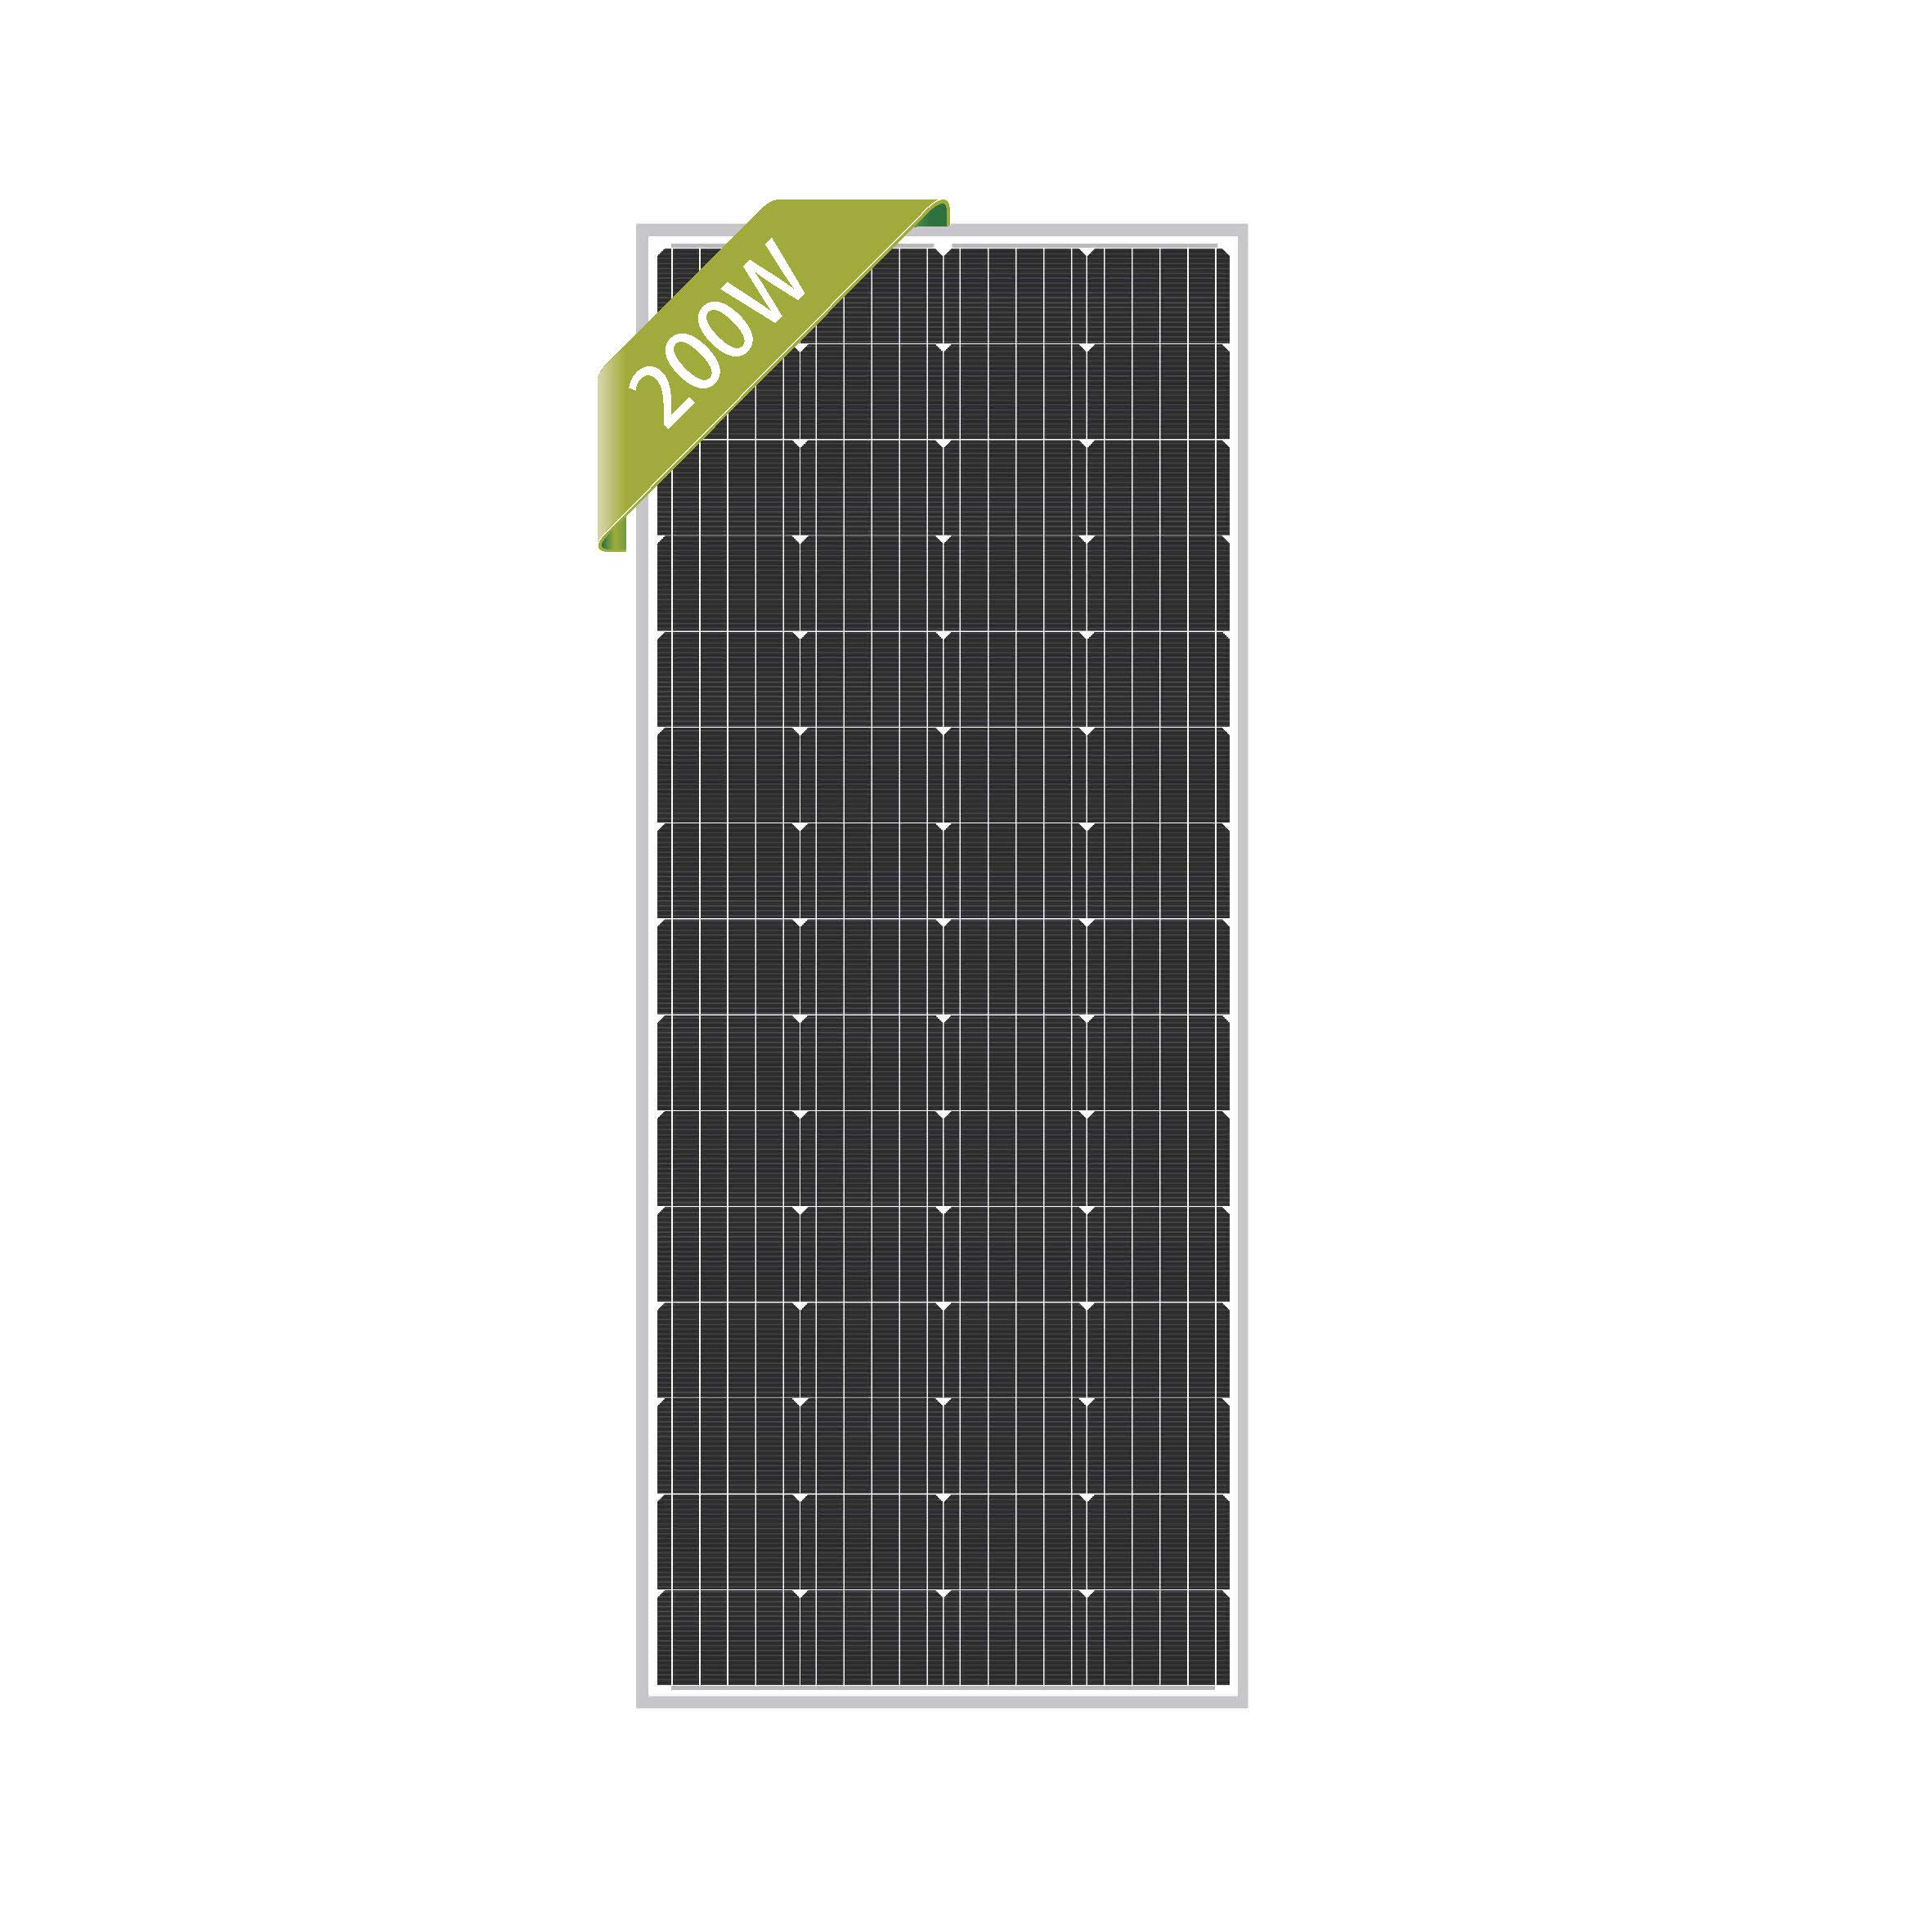 Newpowa 200W Monocrystalline 200 Watt 12V Solar Panel High Efficiency Mono Module RV Marine Boat Off Grid by Newpowa